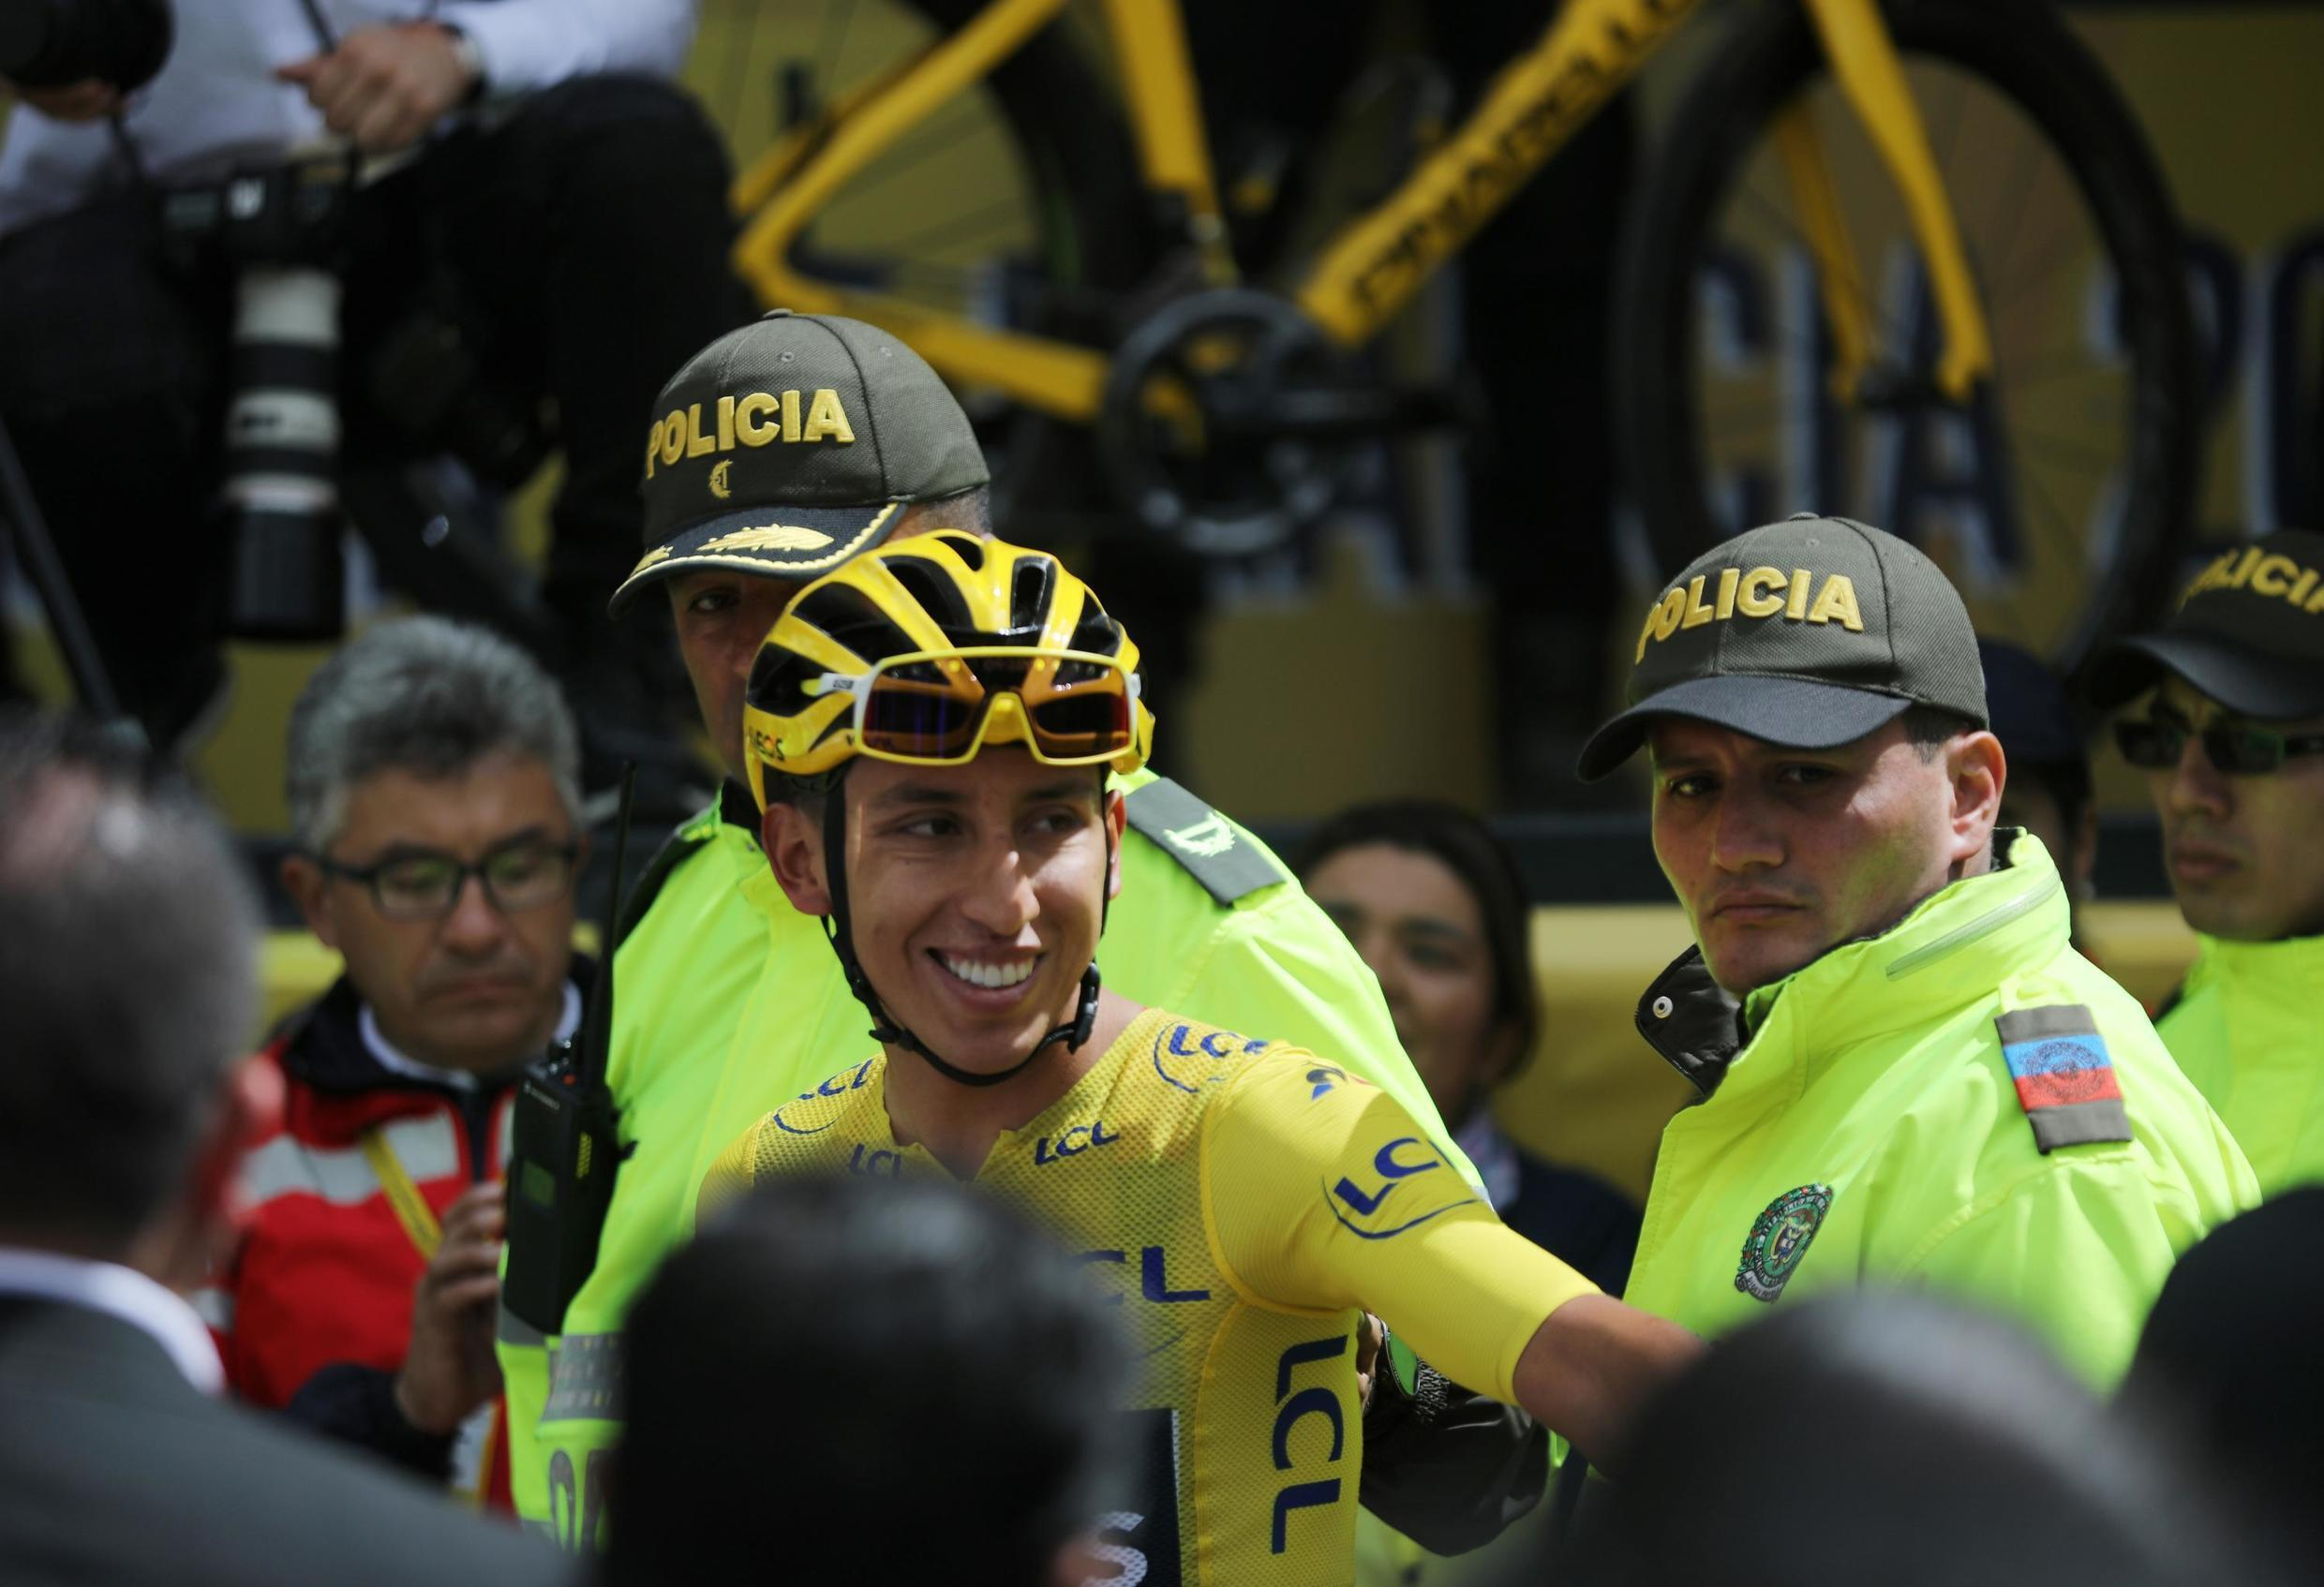 Egan Bernal returns to his home town of Zipaquira in Colombia 22 days after winning the Tour de France.